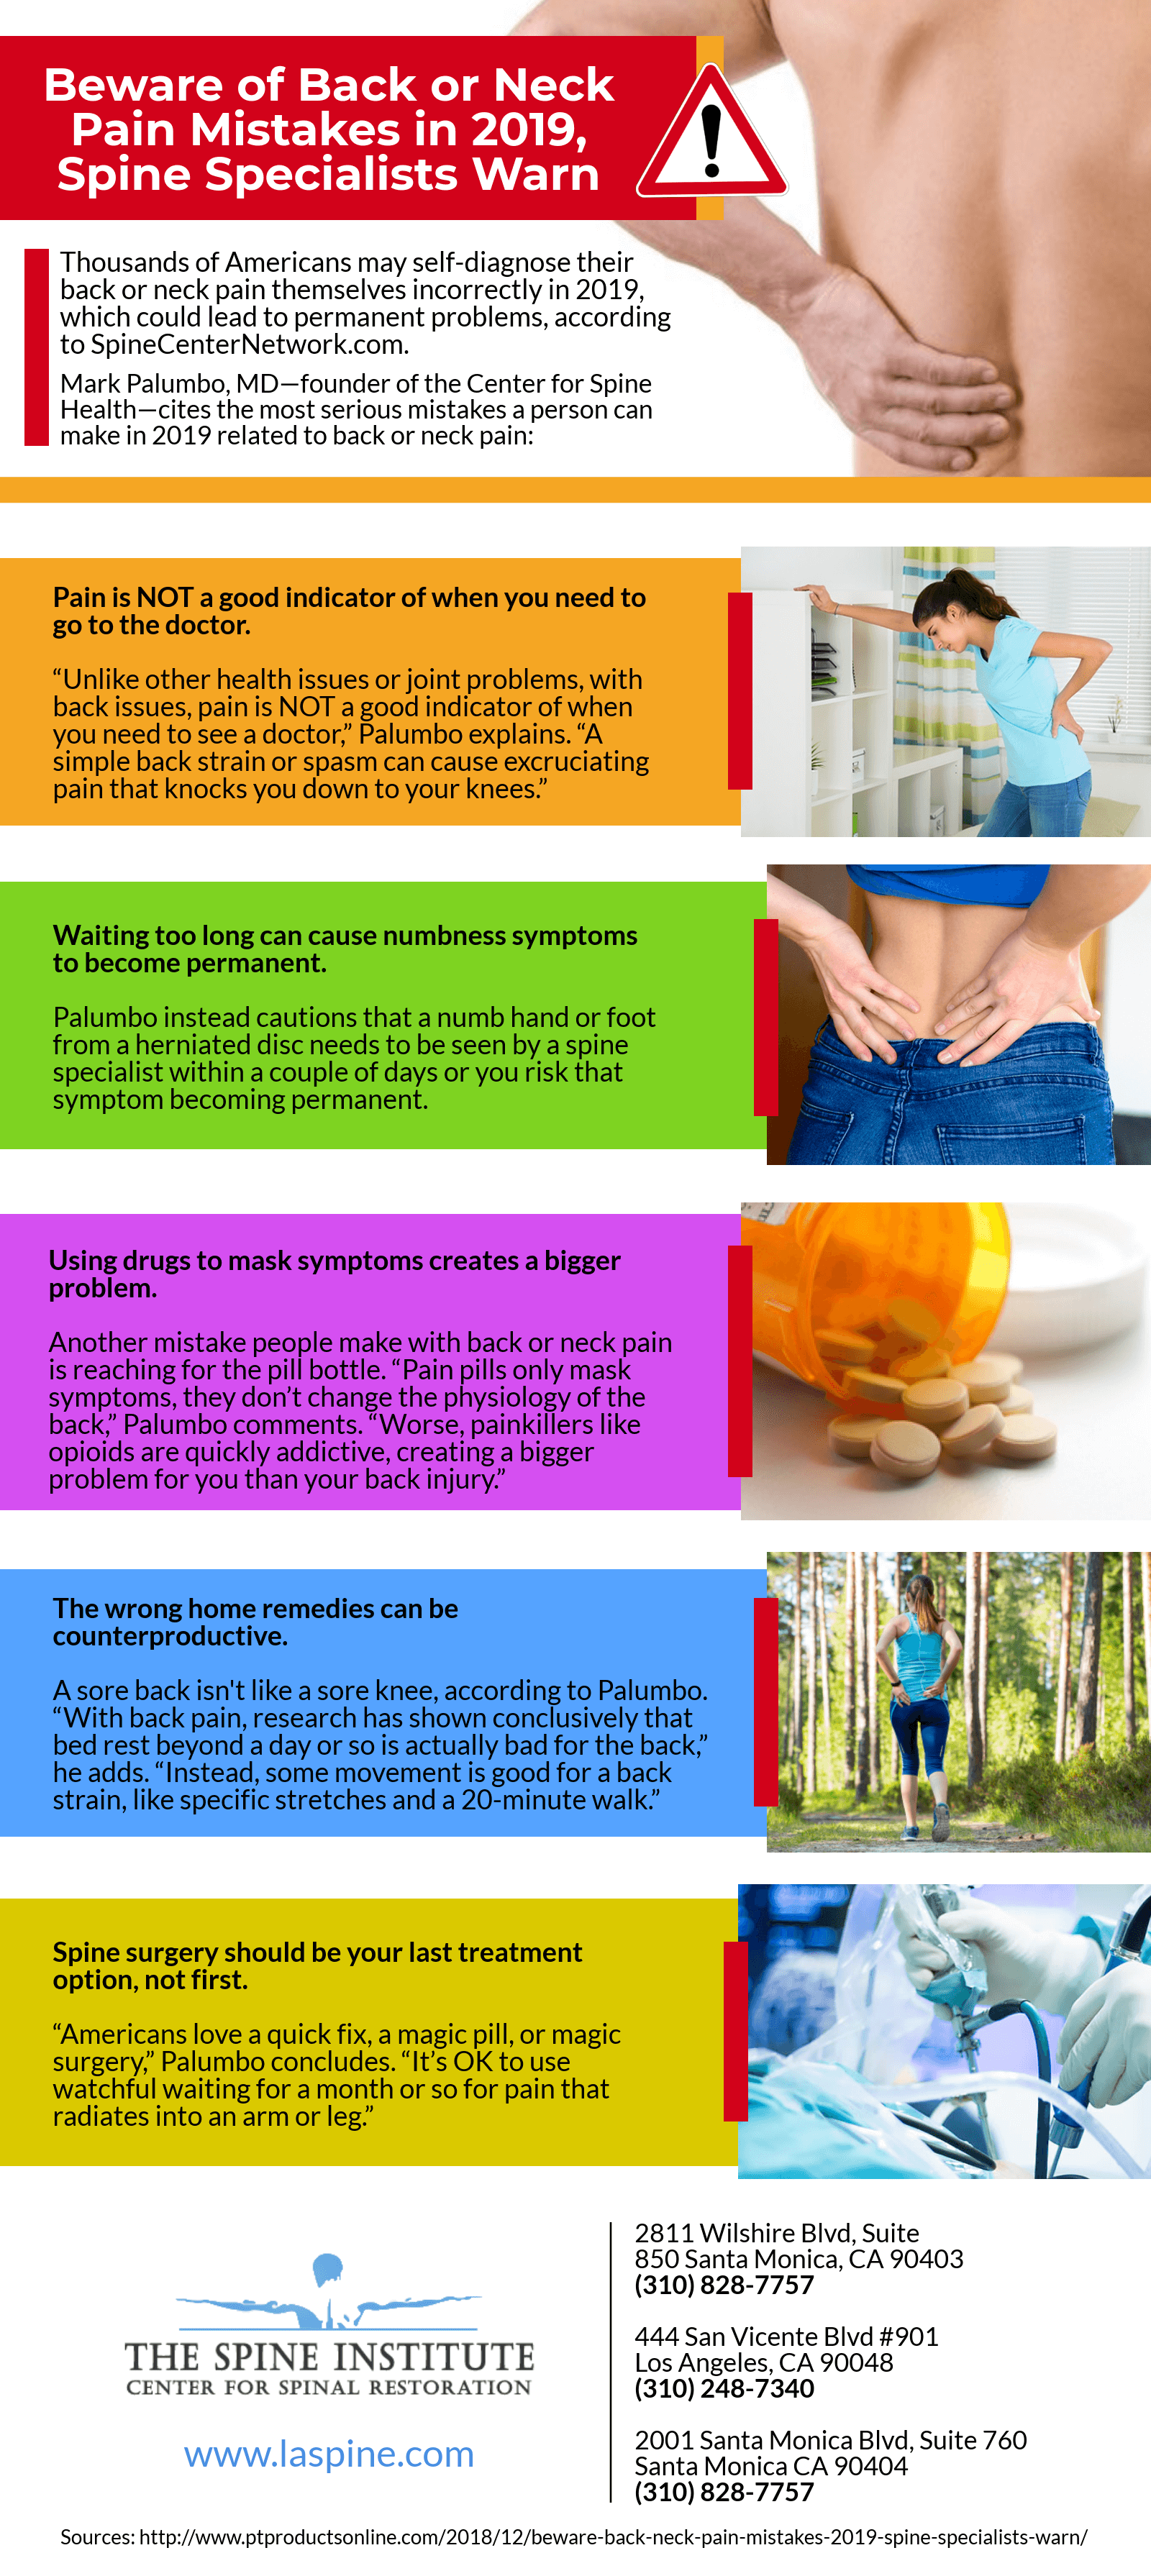 Back & Neck Pain Mistakes To Avoid in 2019 [Infographic]